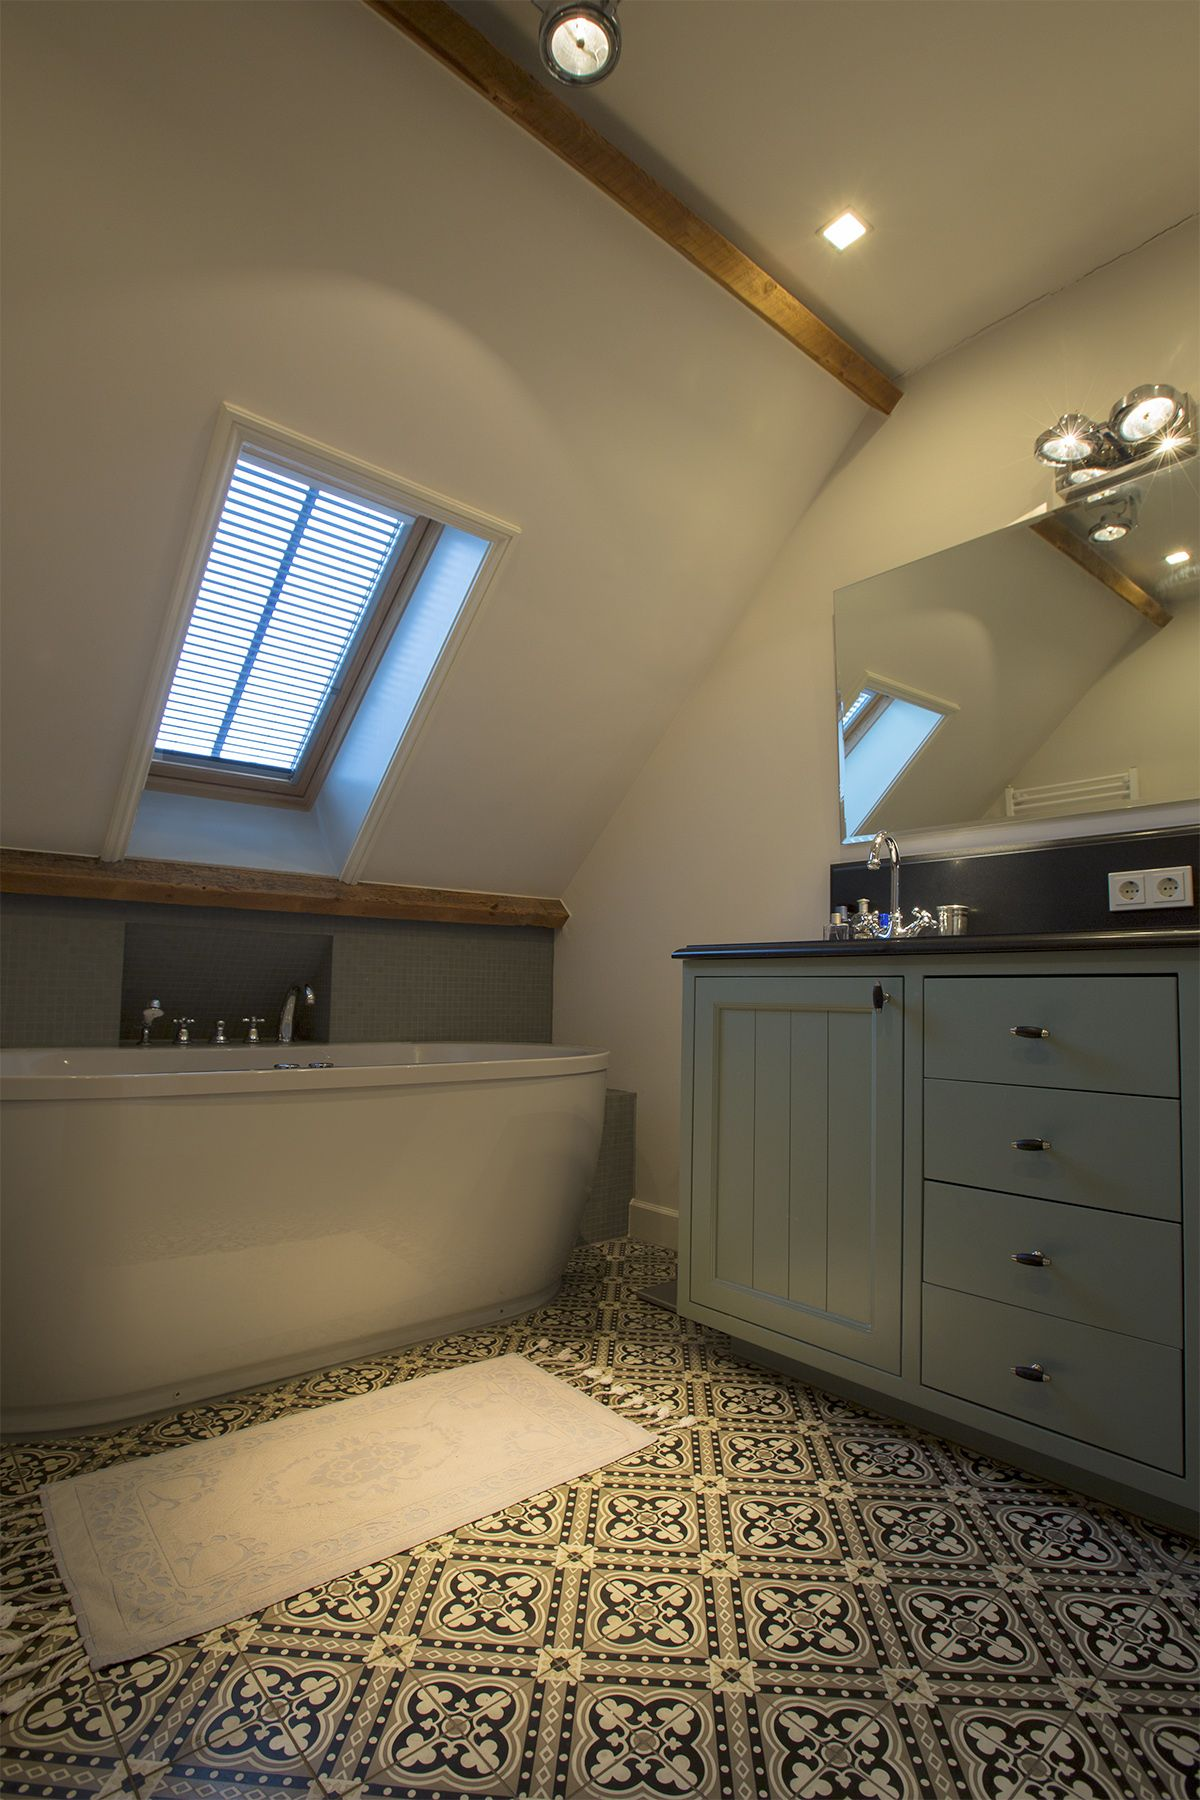 green bathroom with old tiles